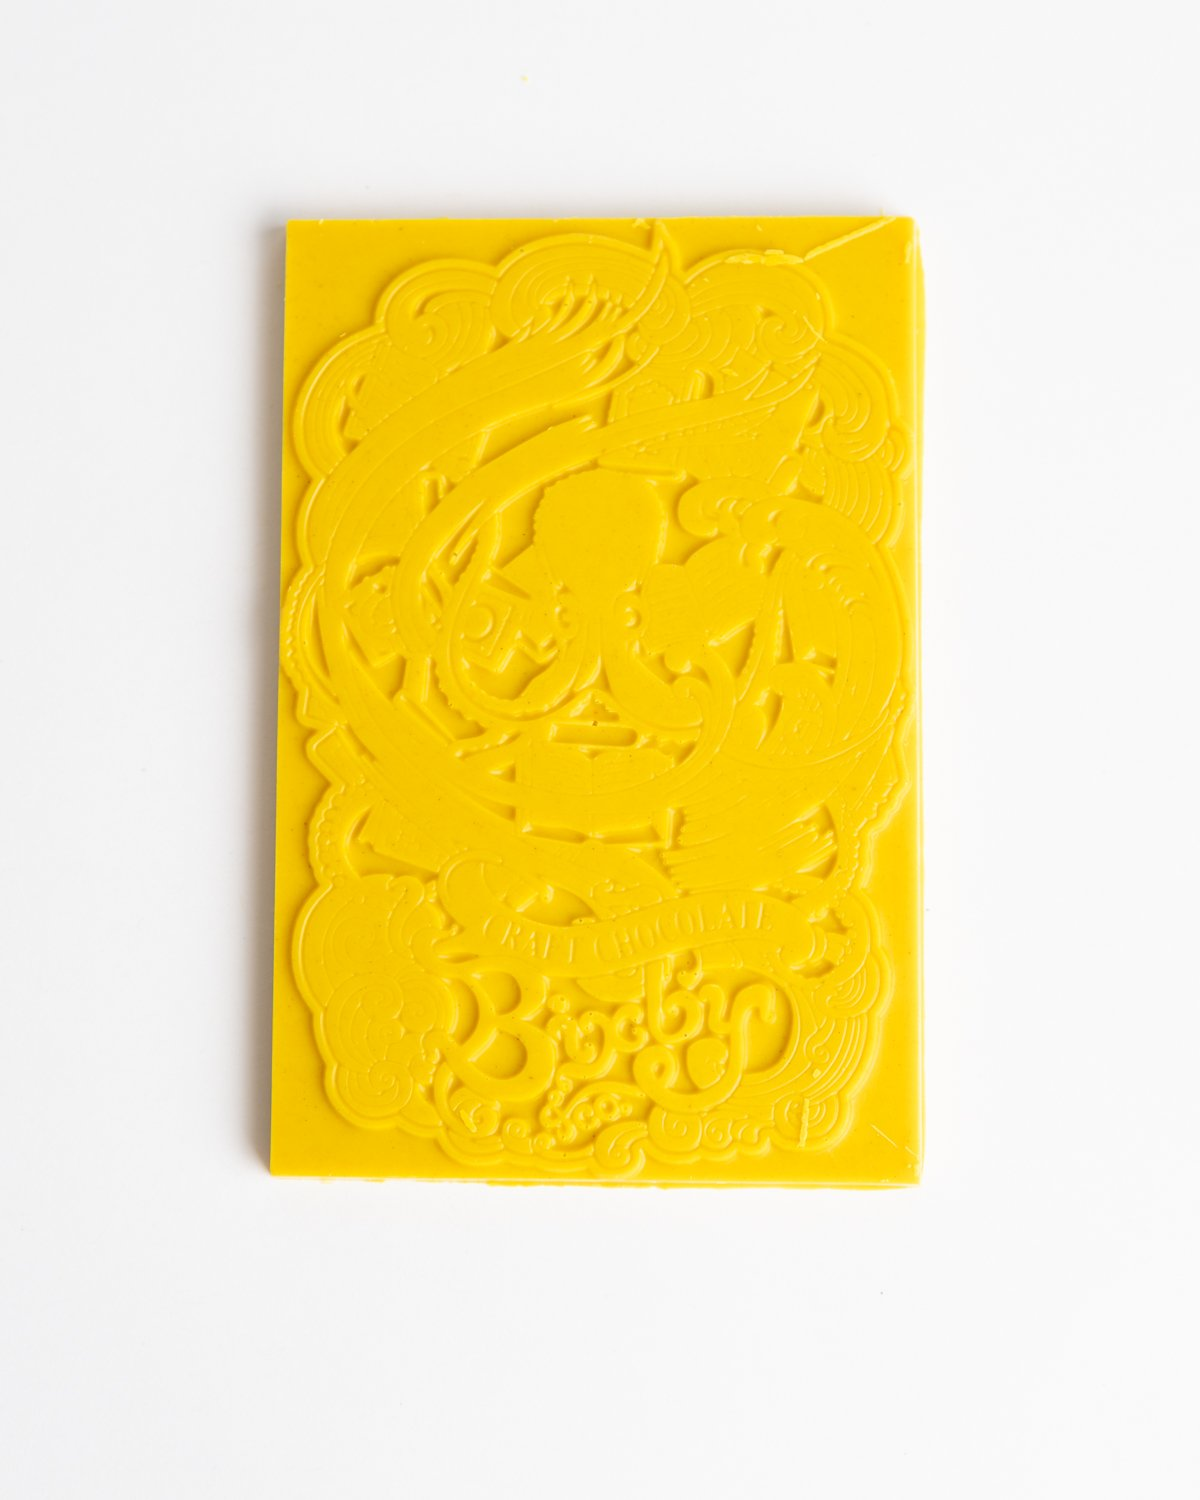 Bixby Golden Milk White Chocolate Bar